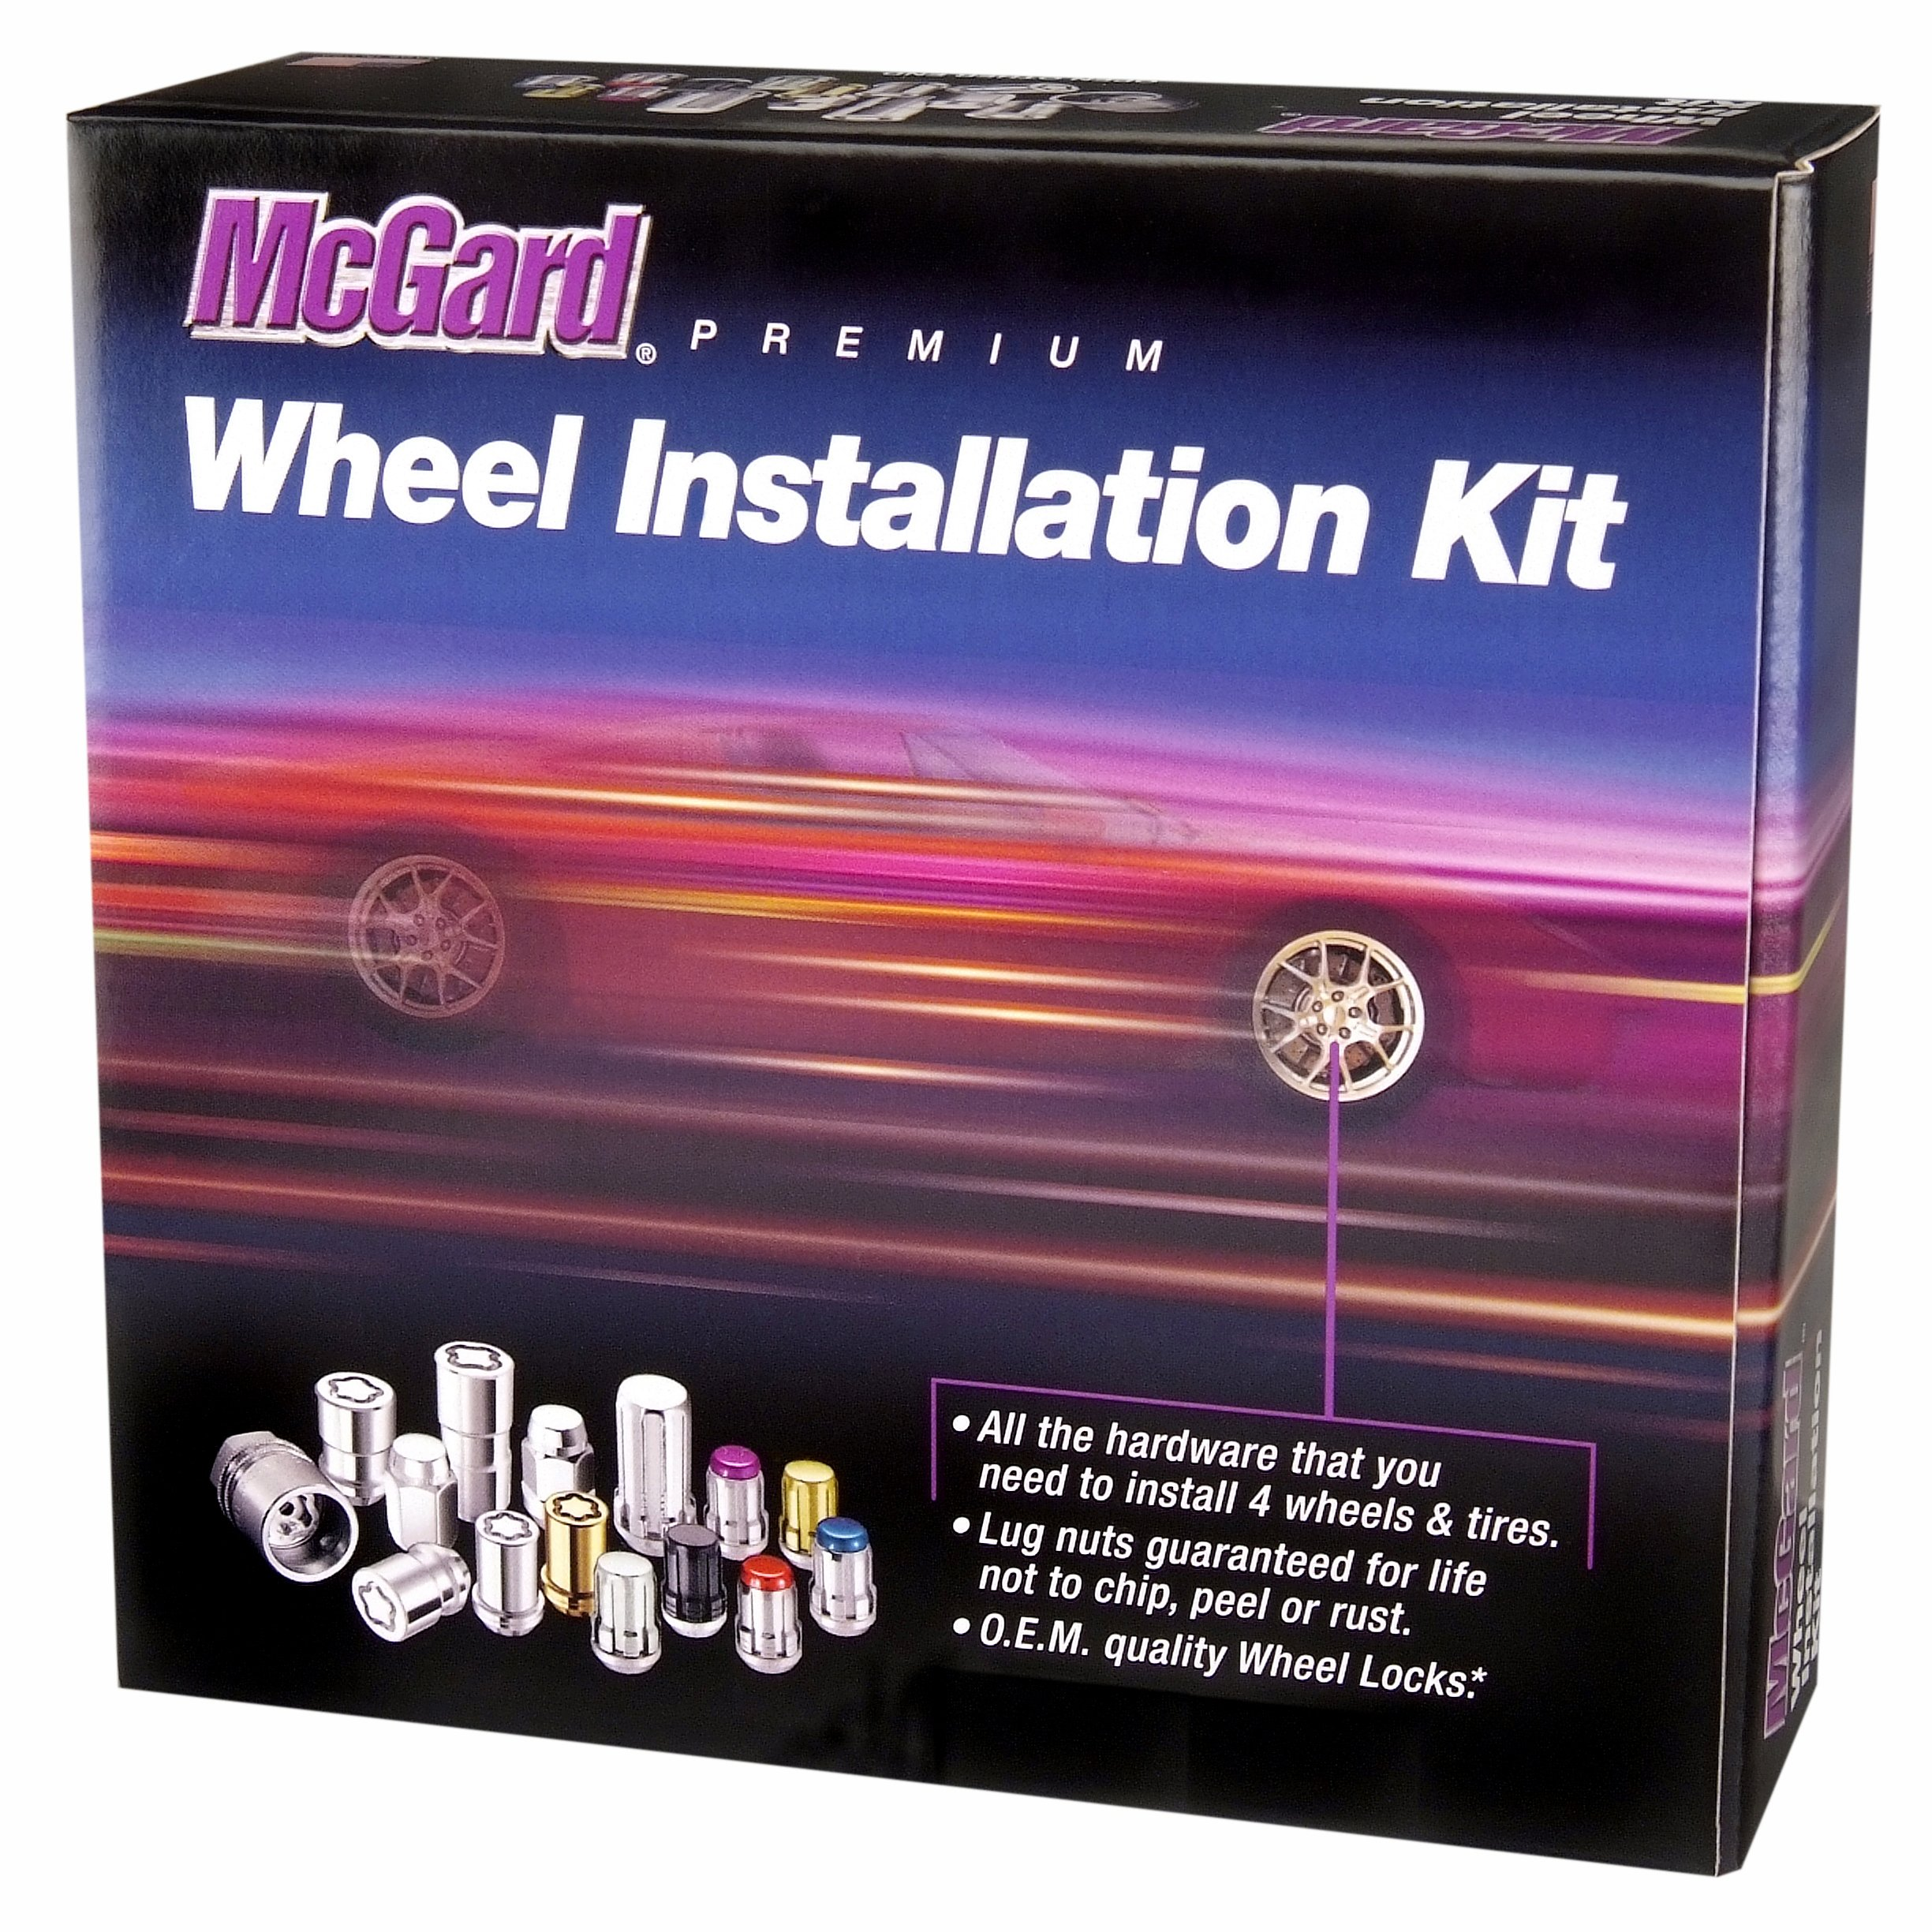 McGard 84550 Chrome (1/2''-20 Thread Size) Bulge Style Cone Seat Wheel Installation Kit for 5-Lug Wheels